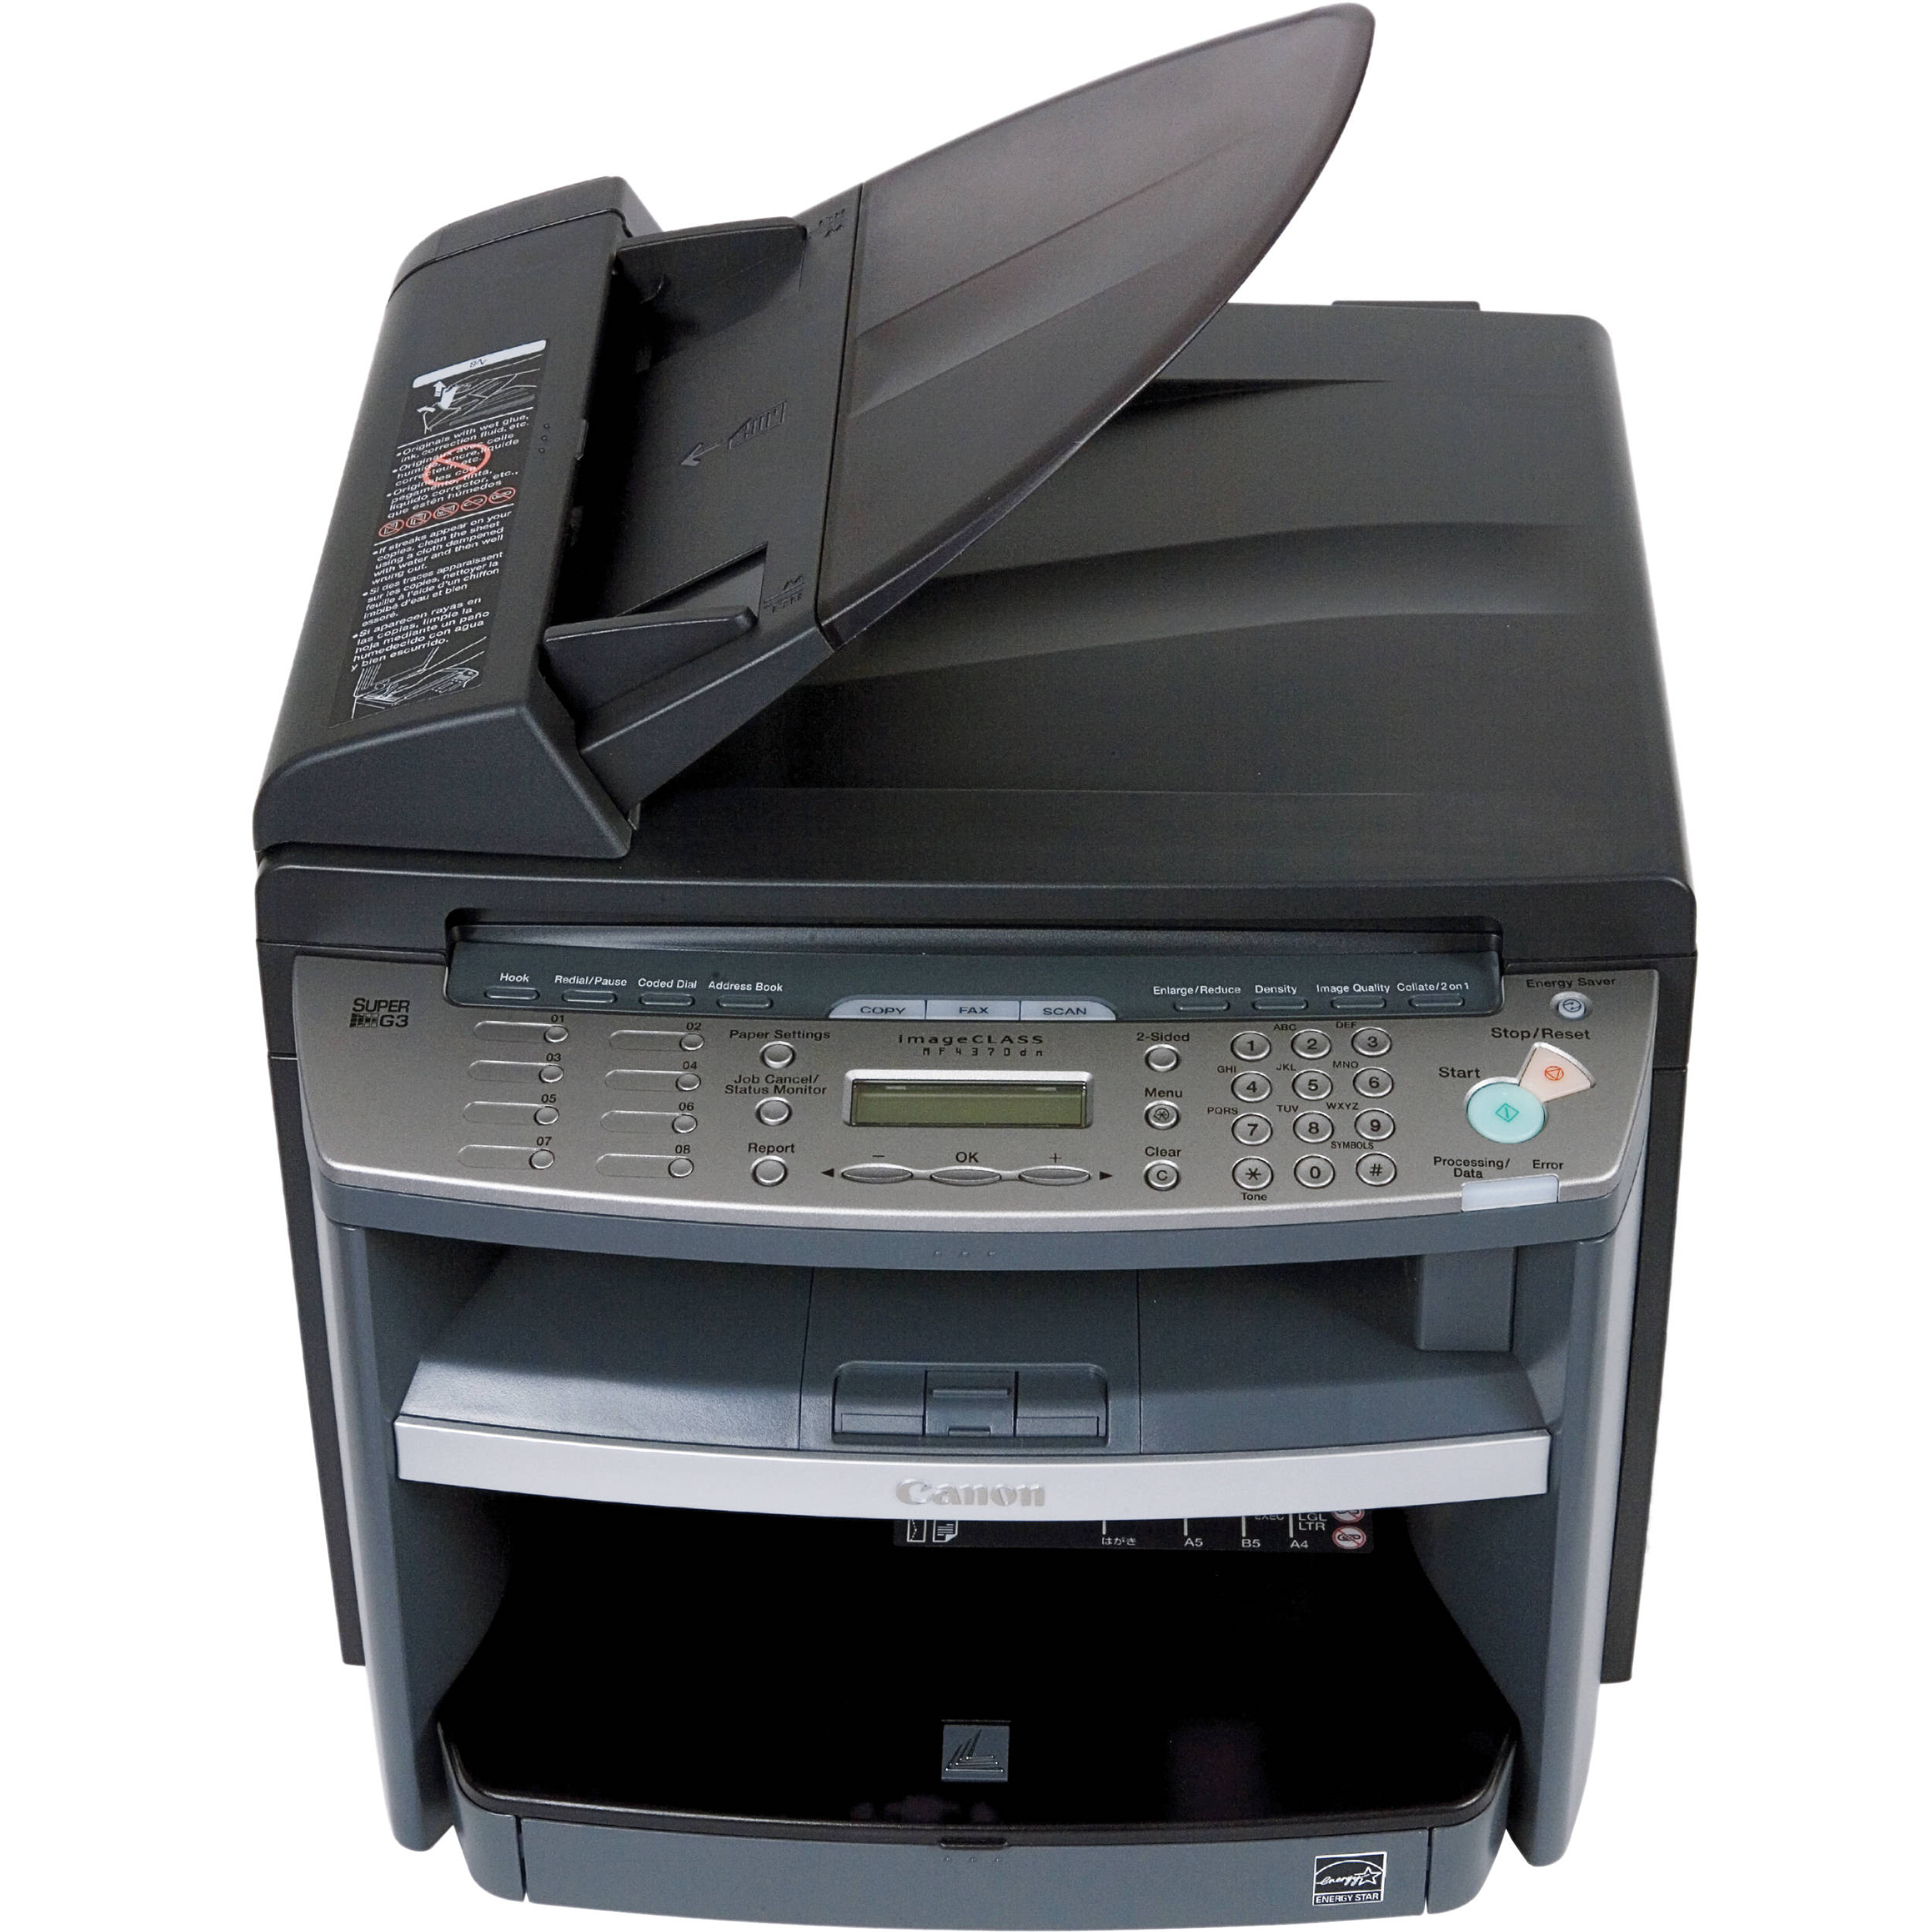 CANON MF4370DN NETWORK SCANNING WINDOWS 10 DOWNLOAD DRIVER